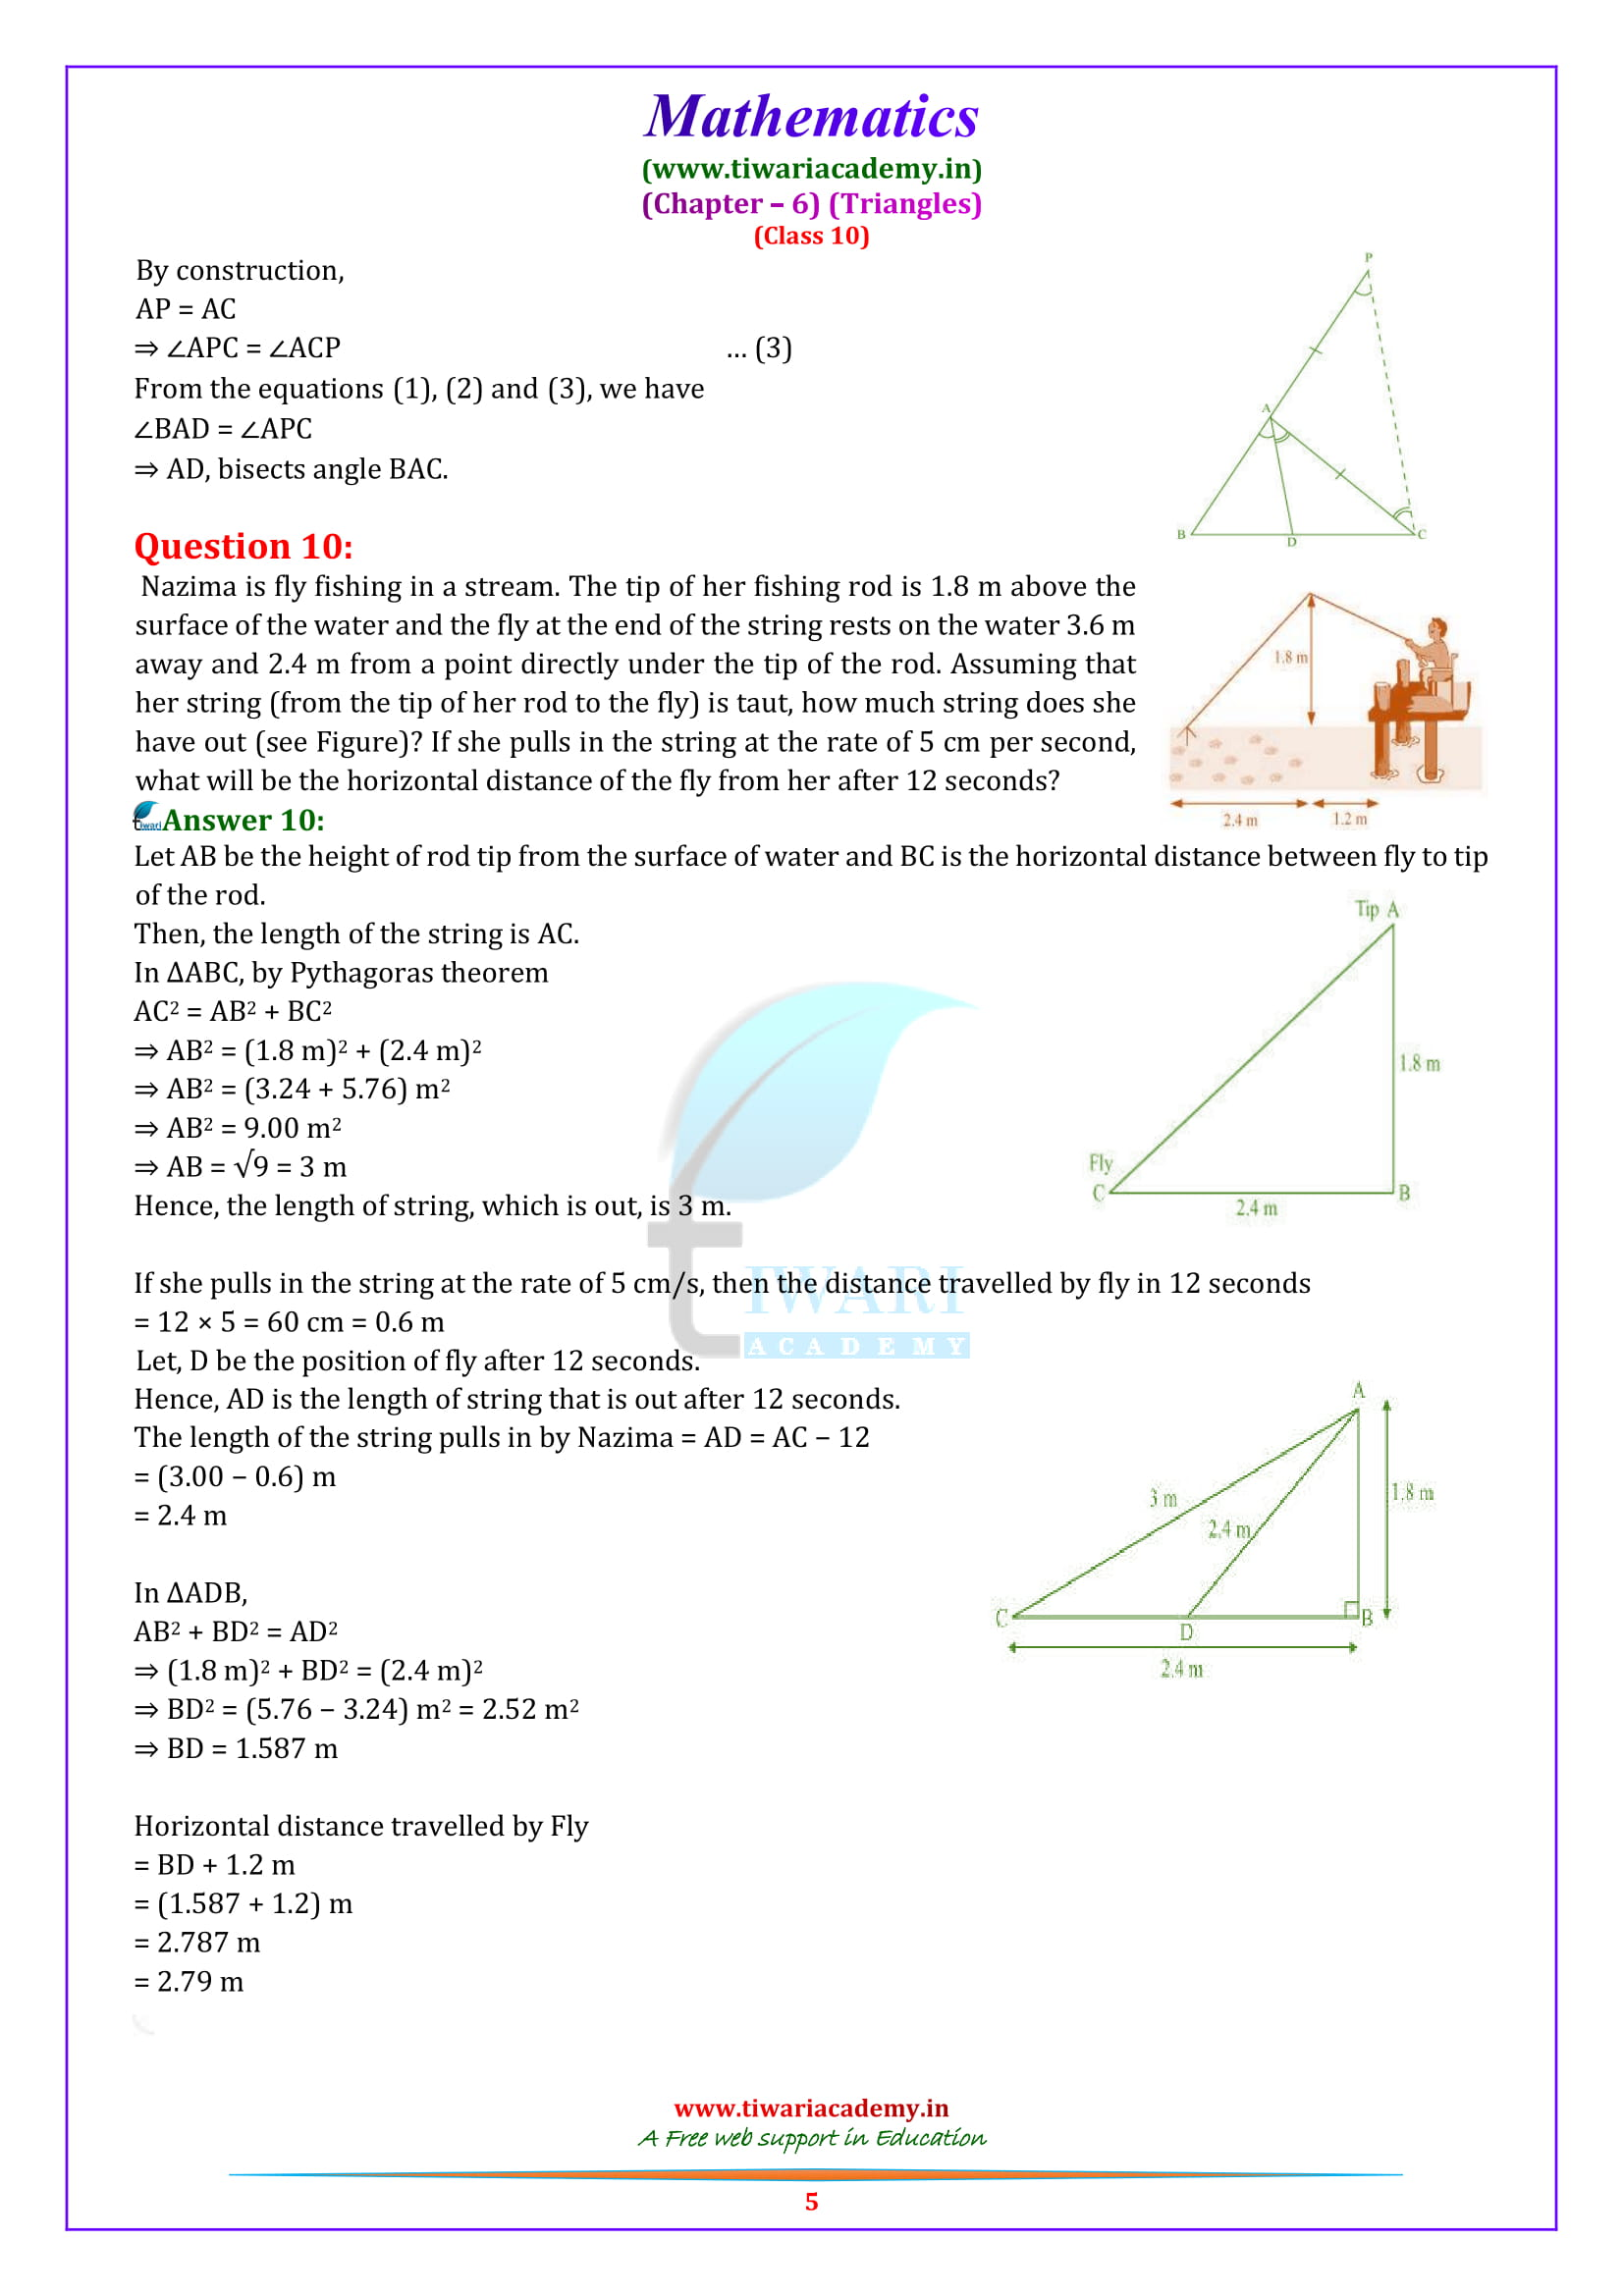 10 Maths optional Exercise 6.6 solutions all questions